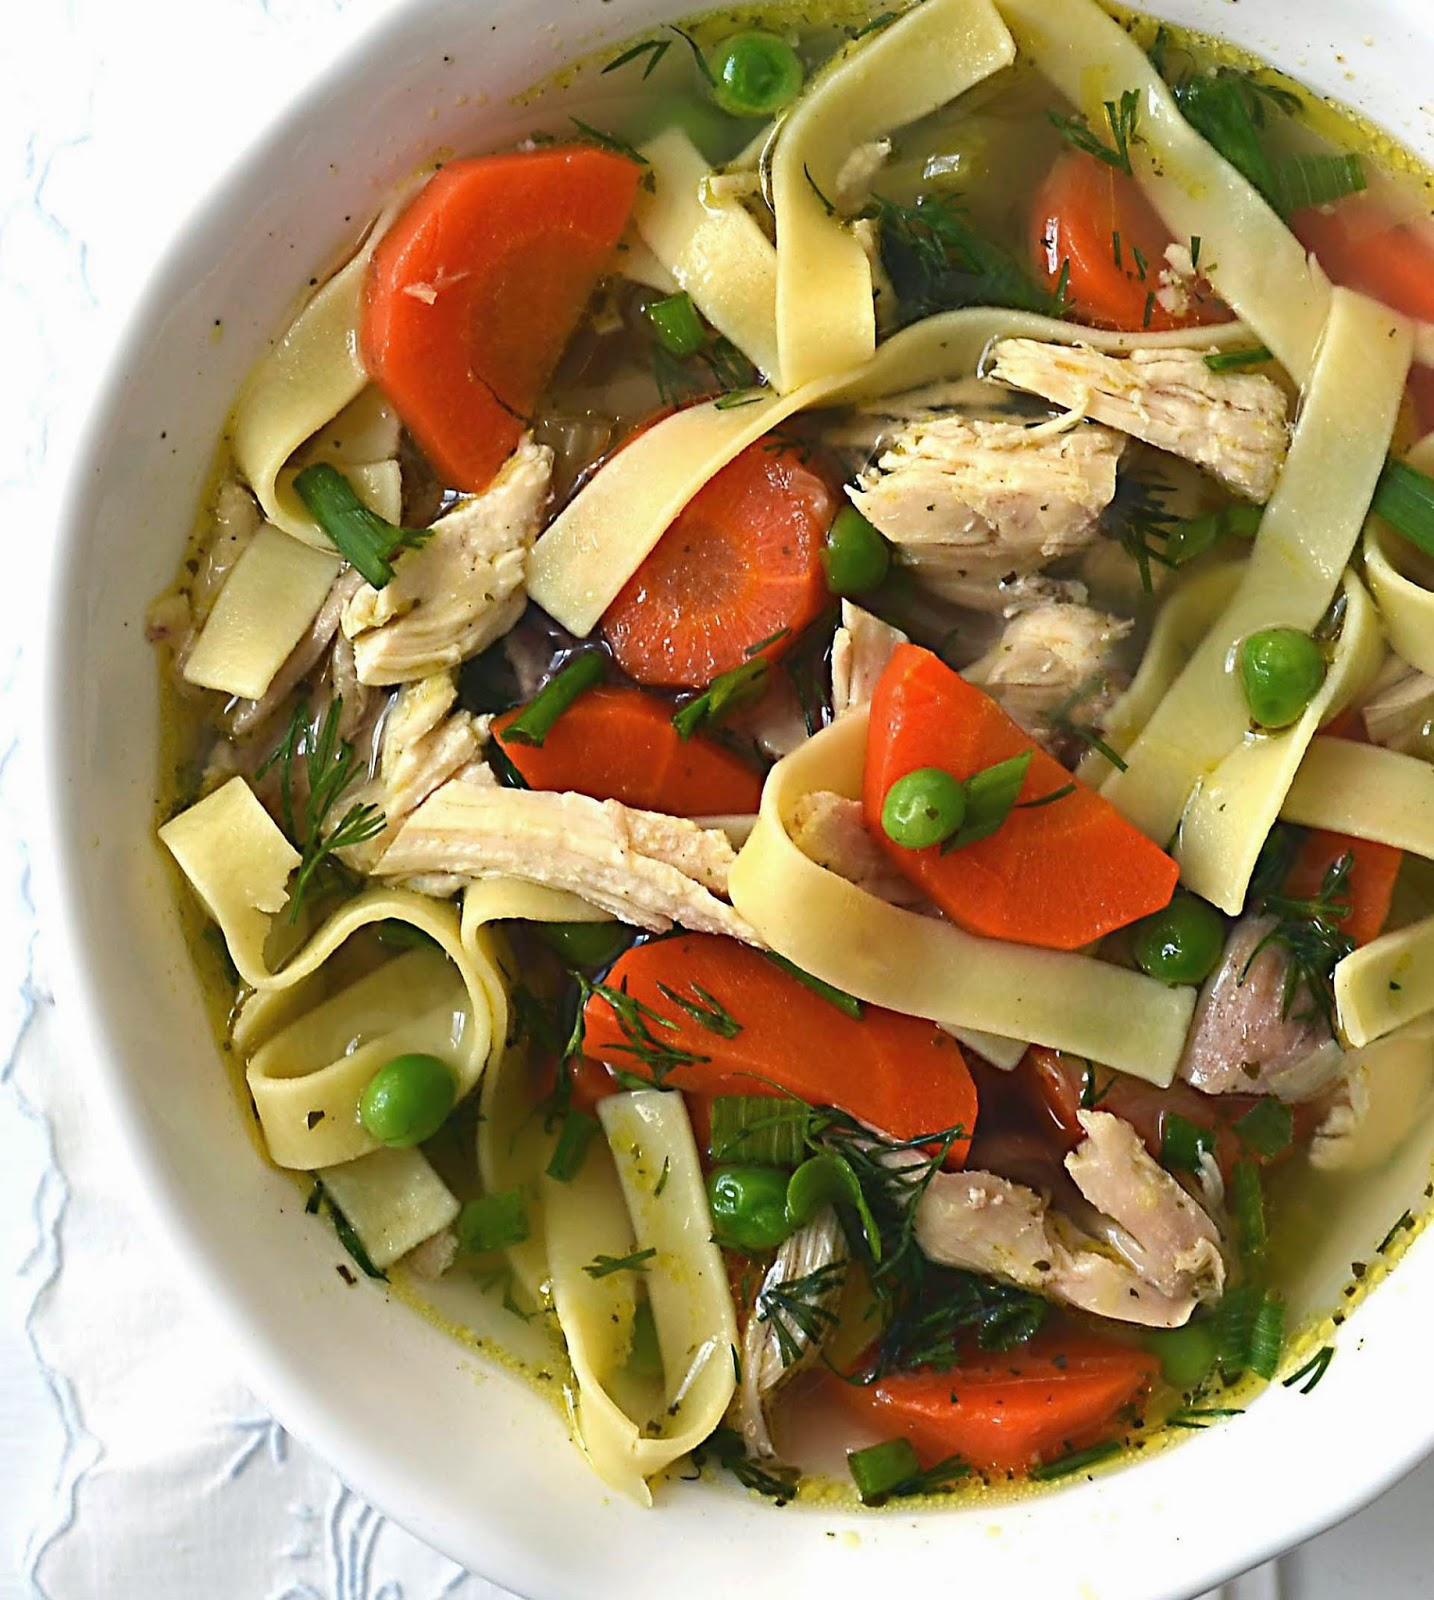 Sew French: Old-Fashioned Chicken Noodle Soup